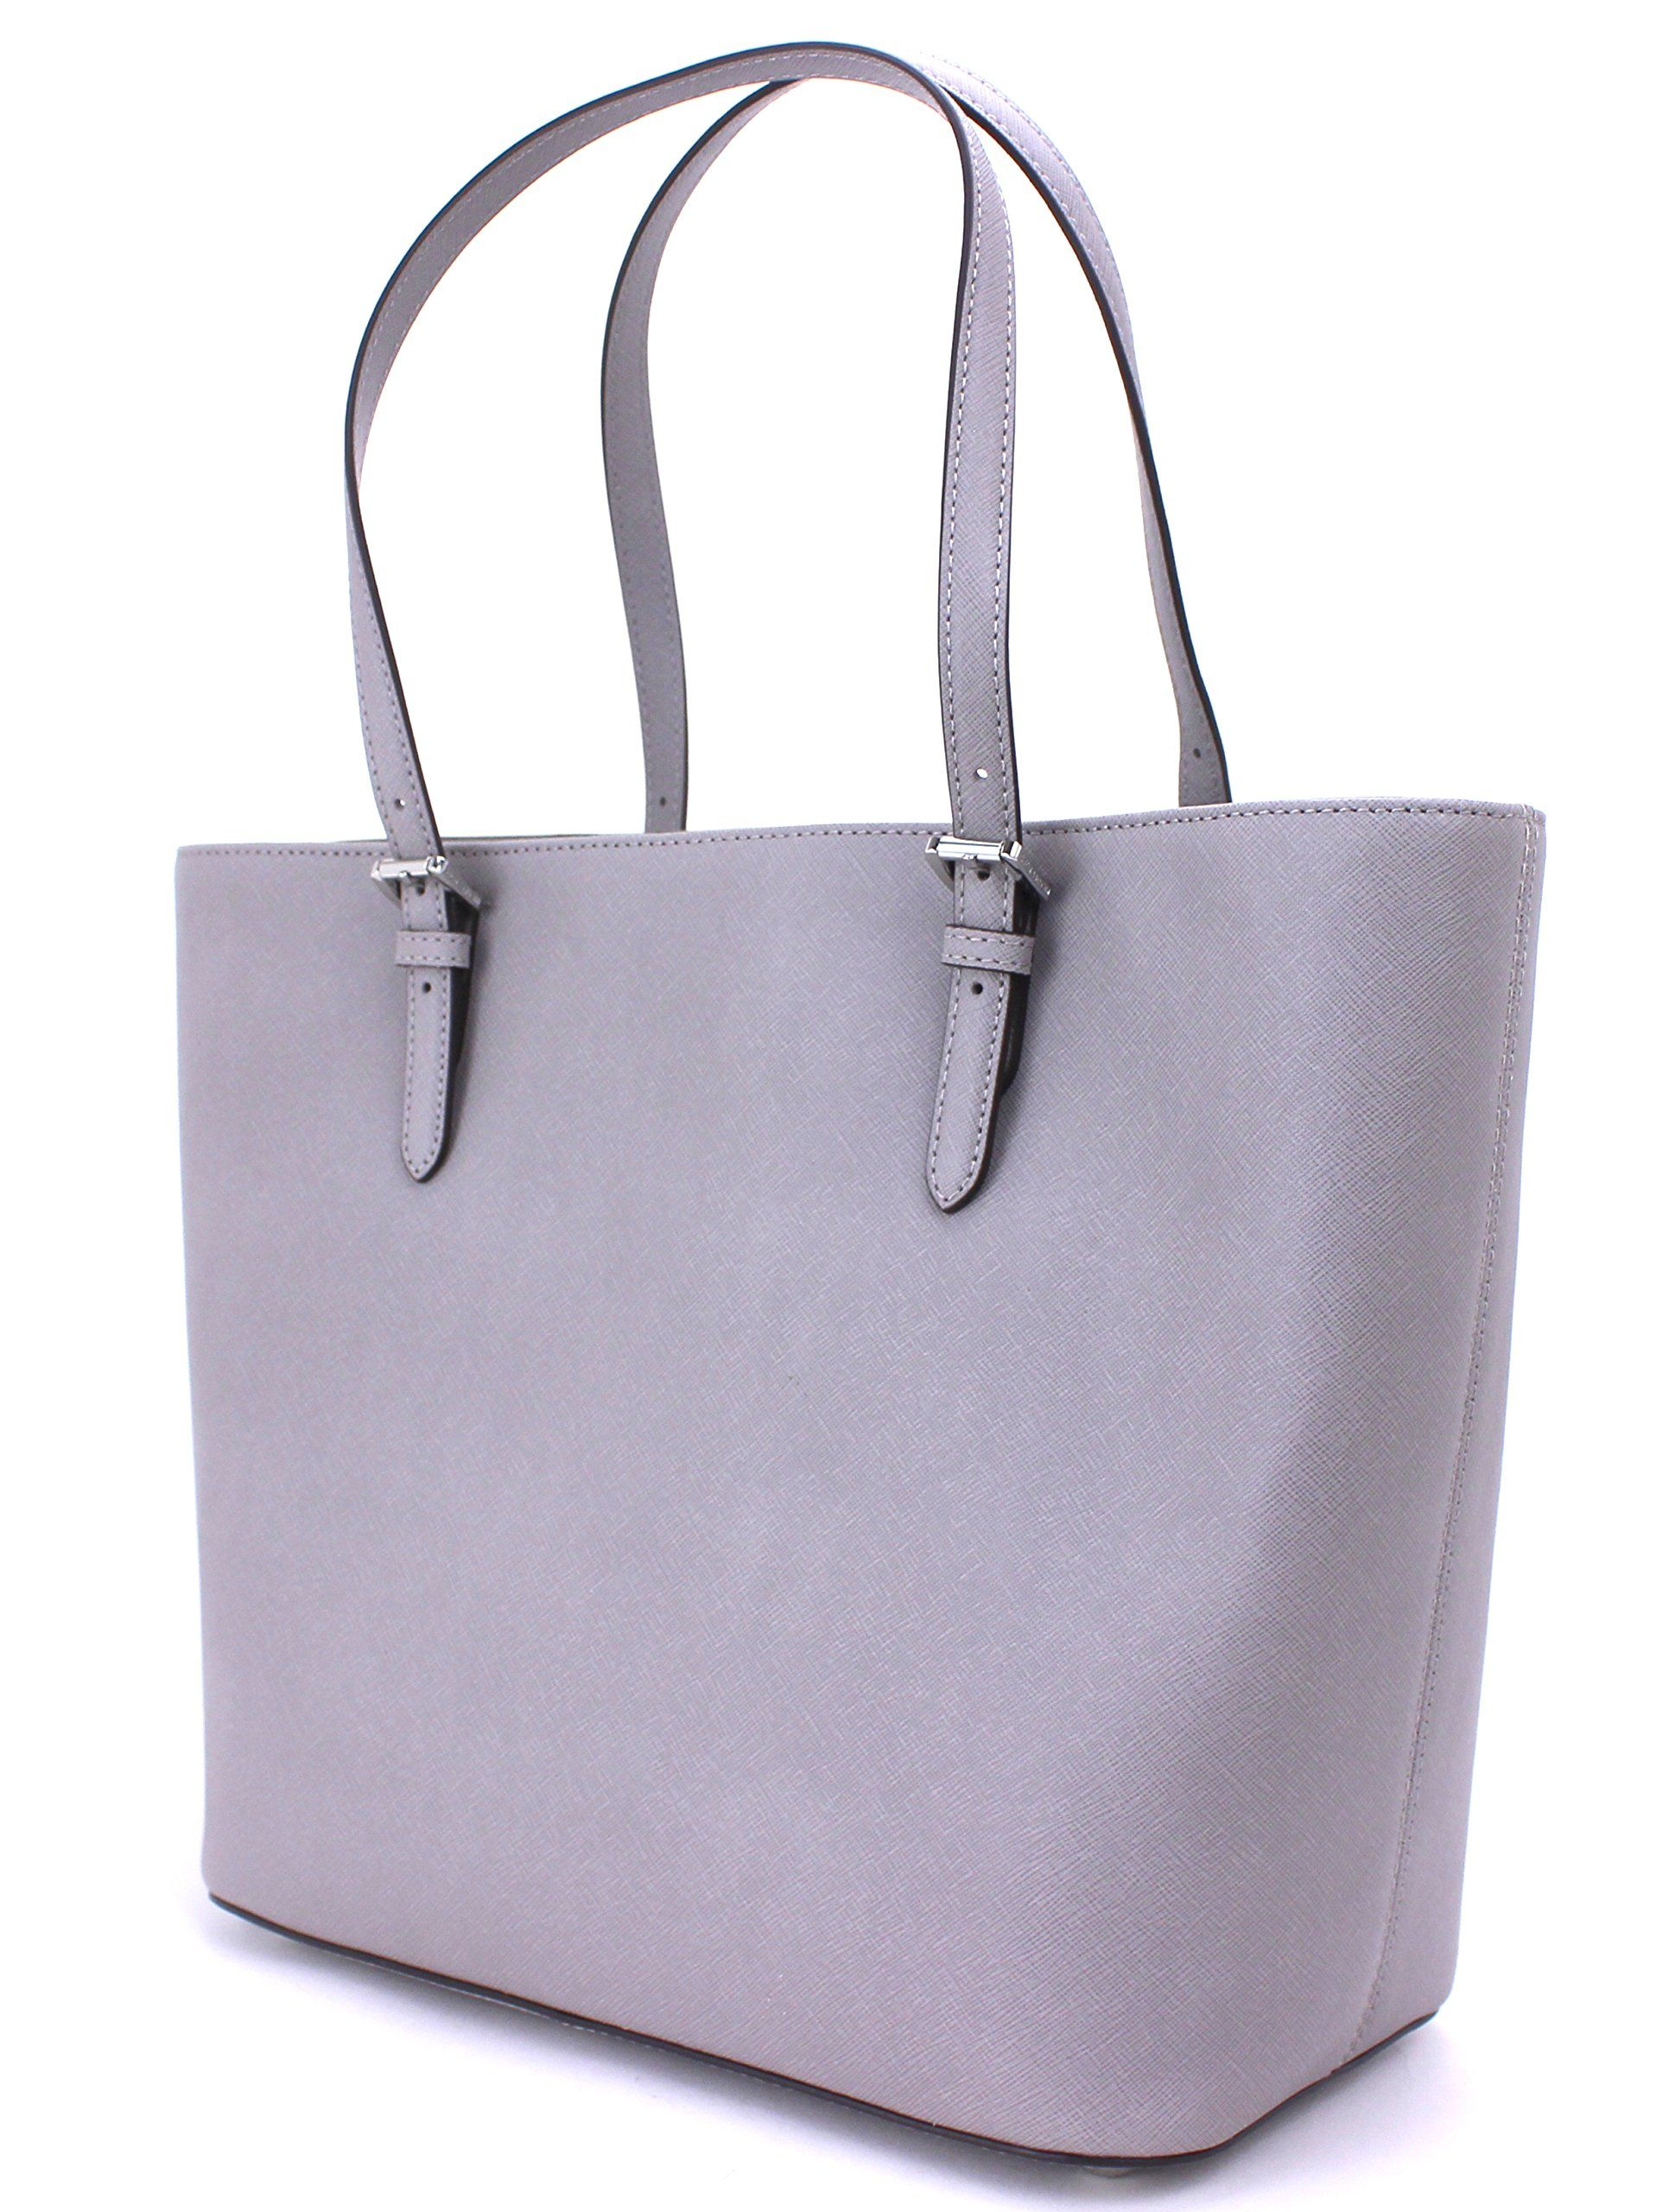 616c398ff96a84 Michael Kors Jet Set Large Pocket MF Tote Saffiano Leather Pearl  Grey/Silver *** See this great product. (This is an affiliate link)  #MichaelKorsHandbags